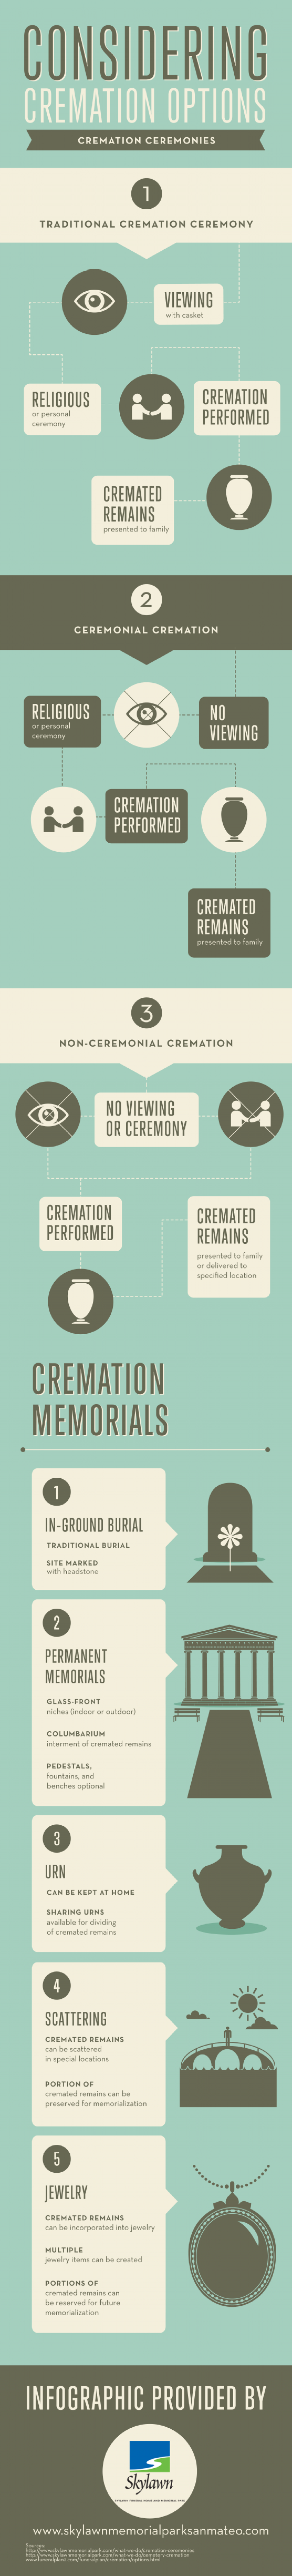 Considering Cremation Options Infographic